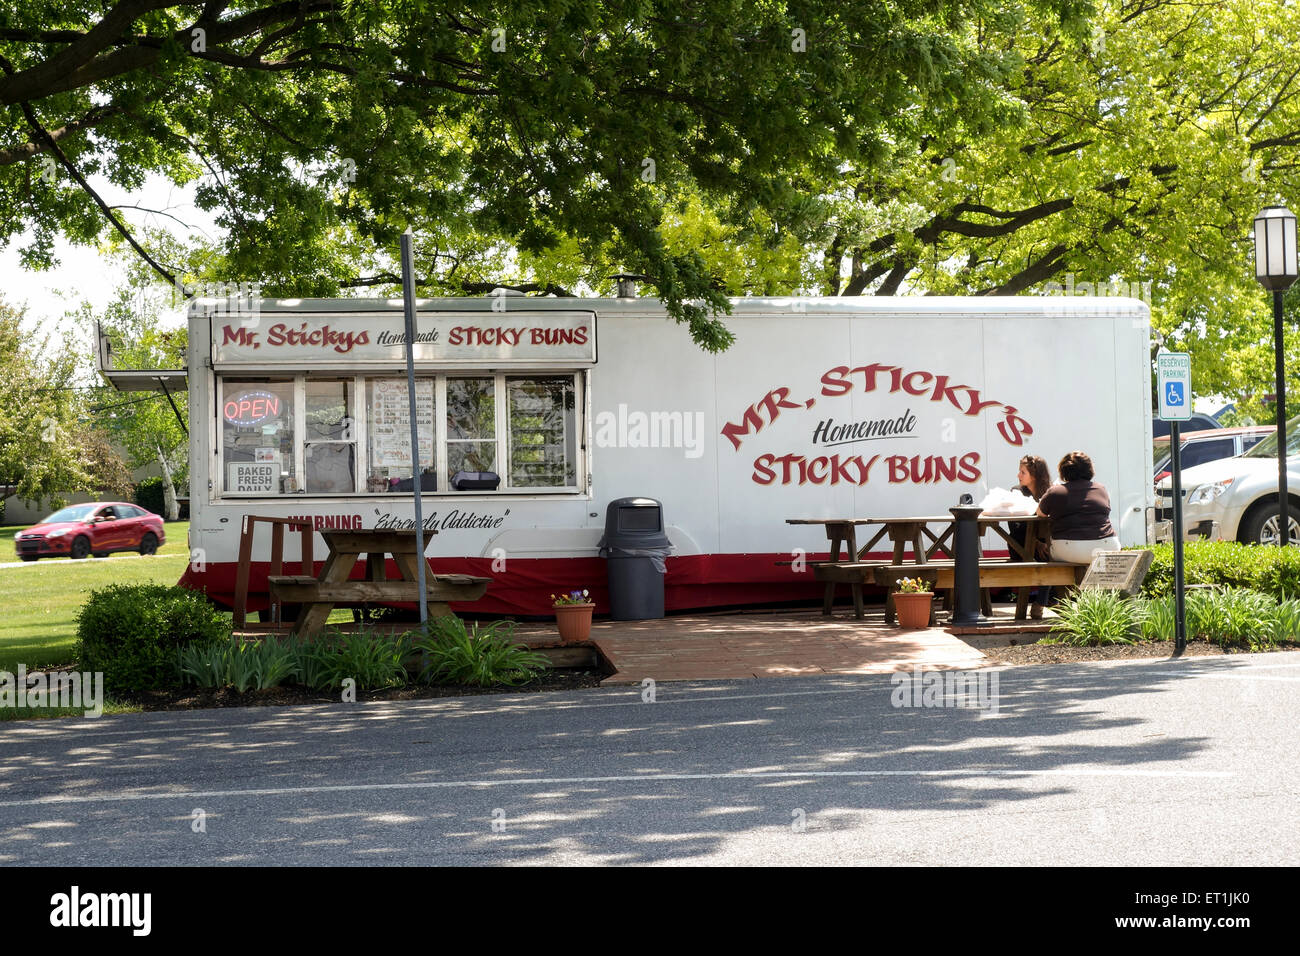 Two people on outdoor terrace at Sticky buns, food truck in Lancaster, Pennsylvania, USA. - Stock Image